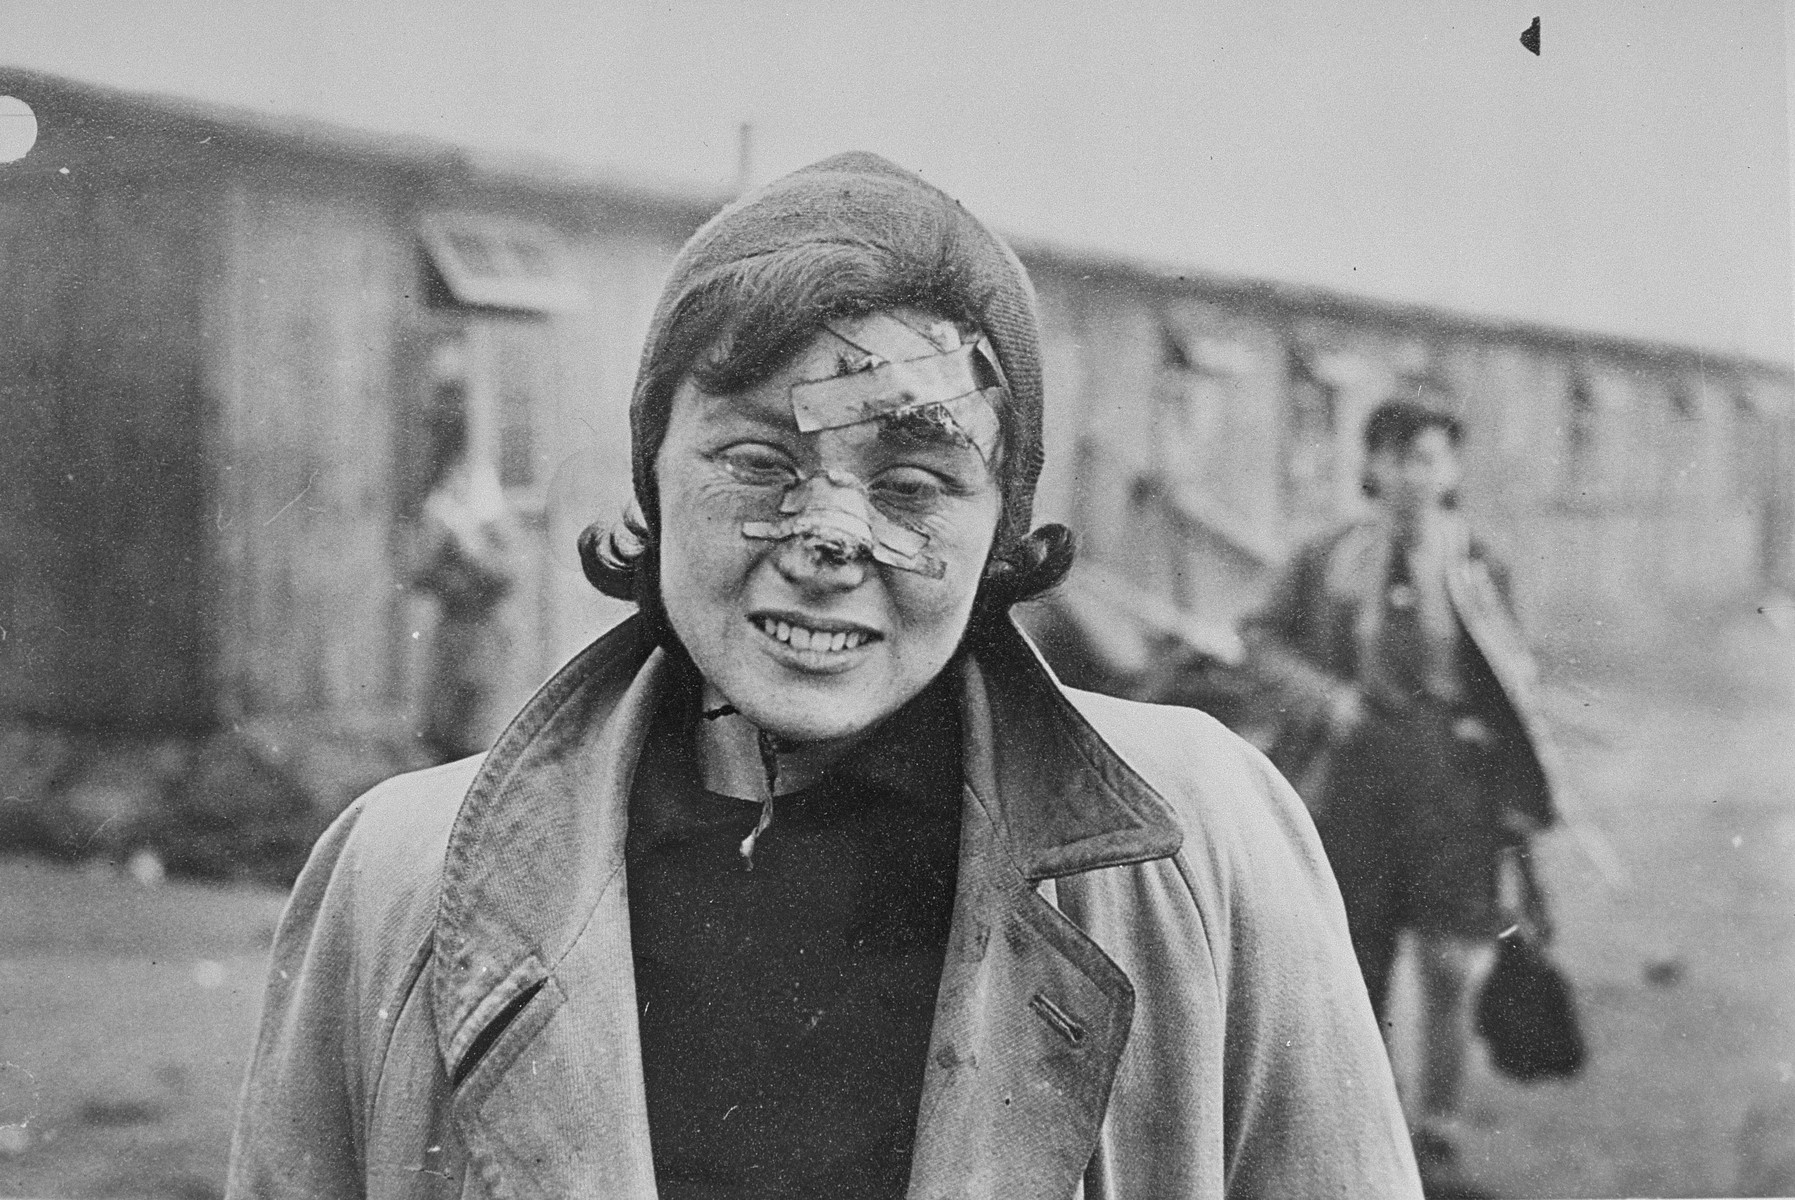 Her wounds badly bandaged, this survivor smiles weakly for the photographer.